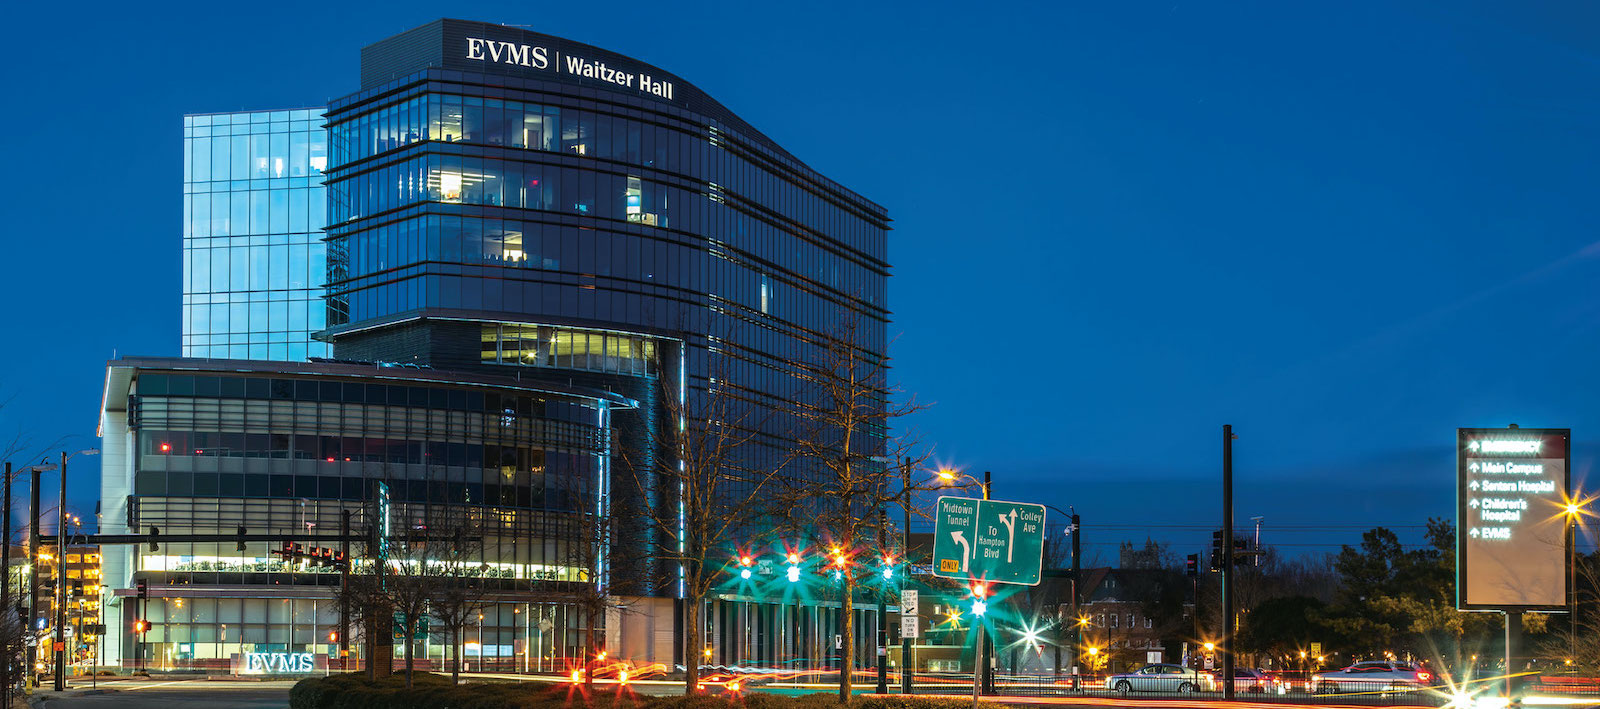 Nighttime view of EVMS' newest building, Waitzer Hall. The building is situated at the southeast corner of campus overlooking the busy intersection of Brambleton and Colley avenues.